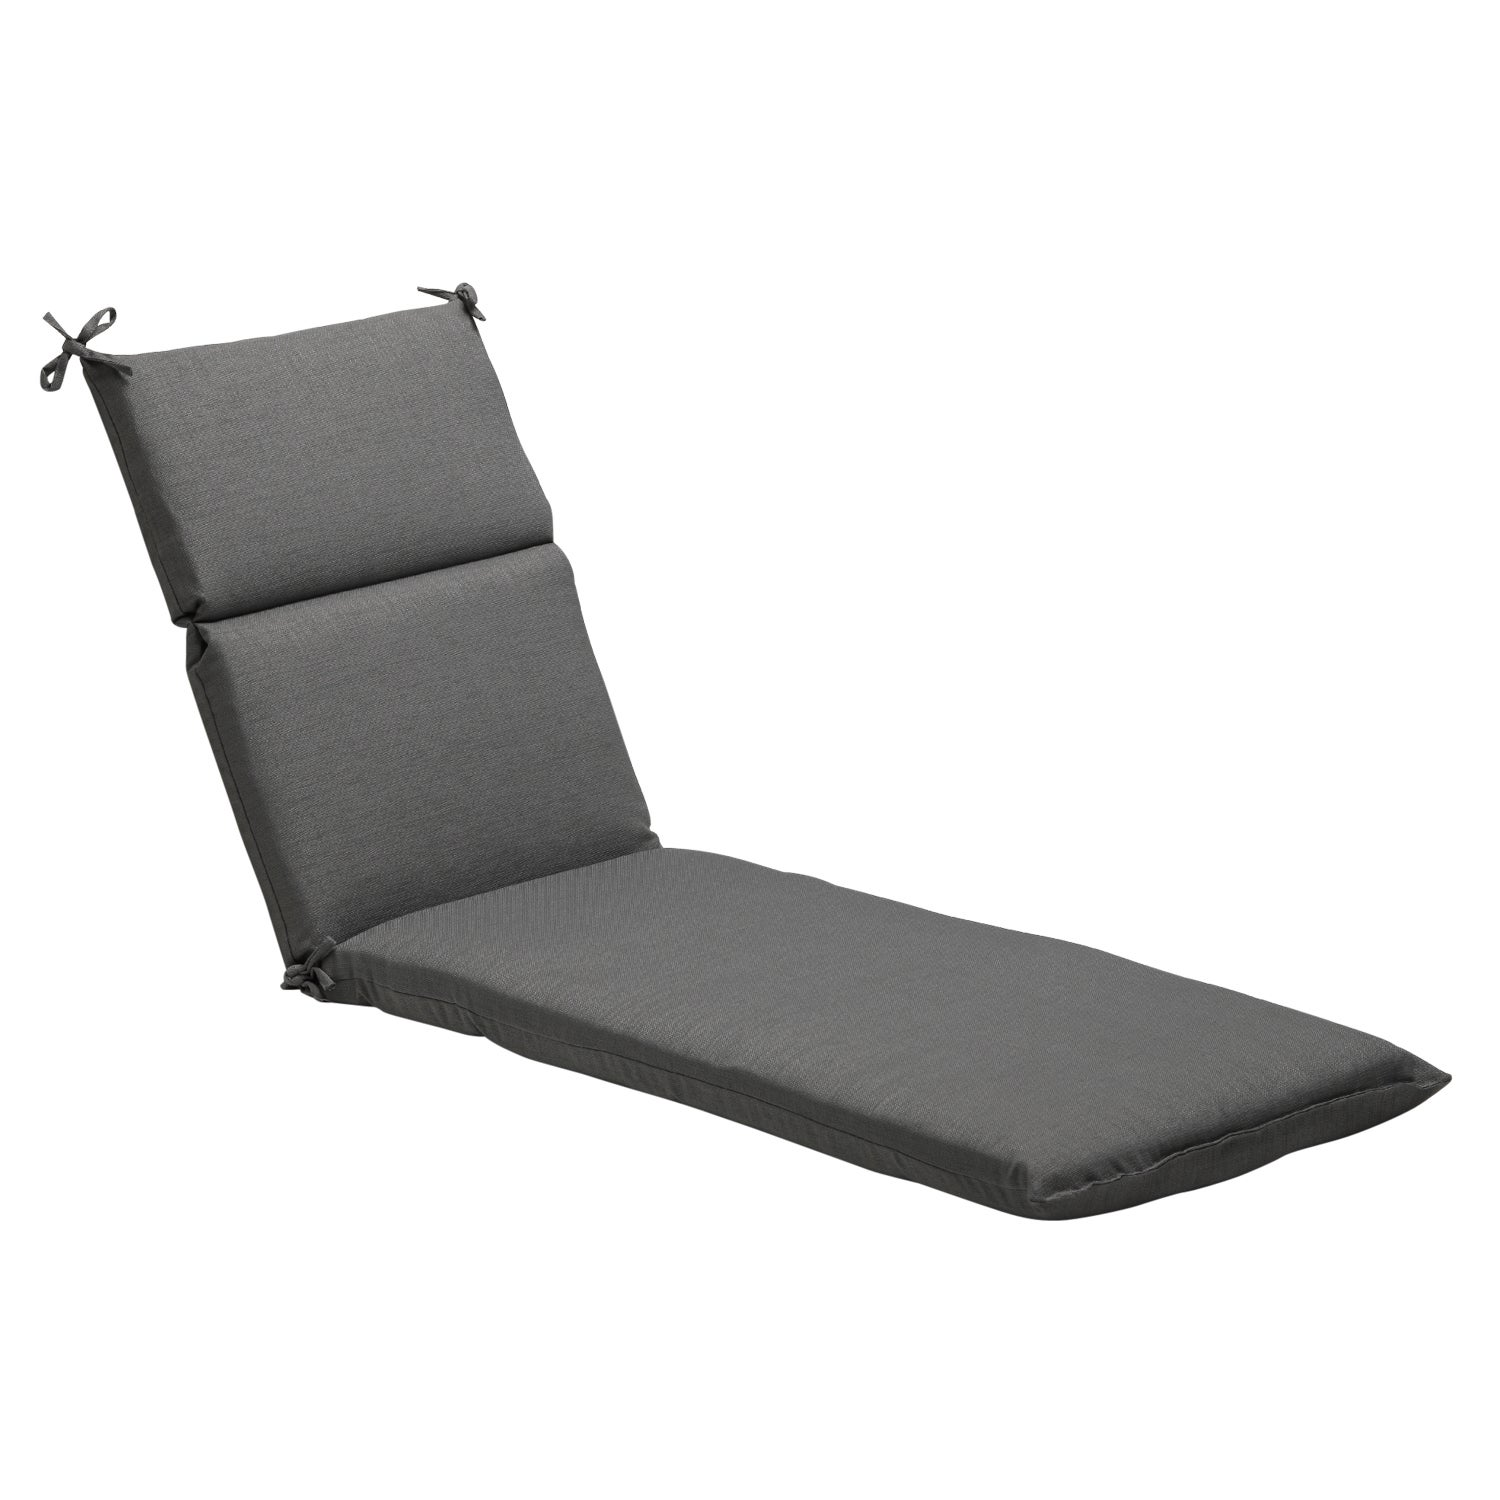 Solid Grey Textured Outdoor Chaise Lounge Cushion